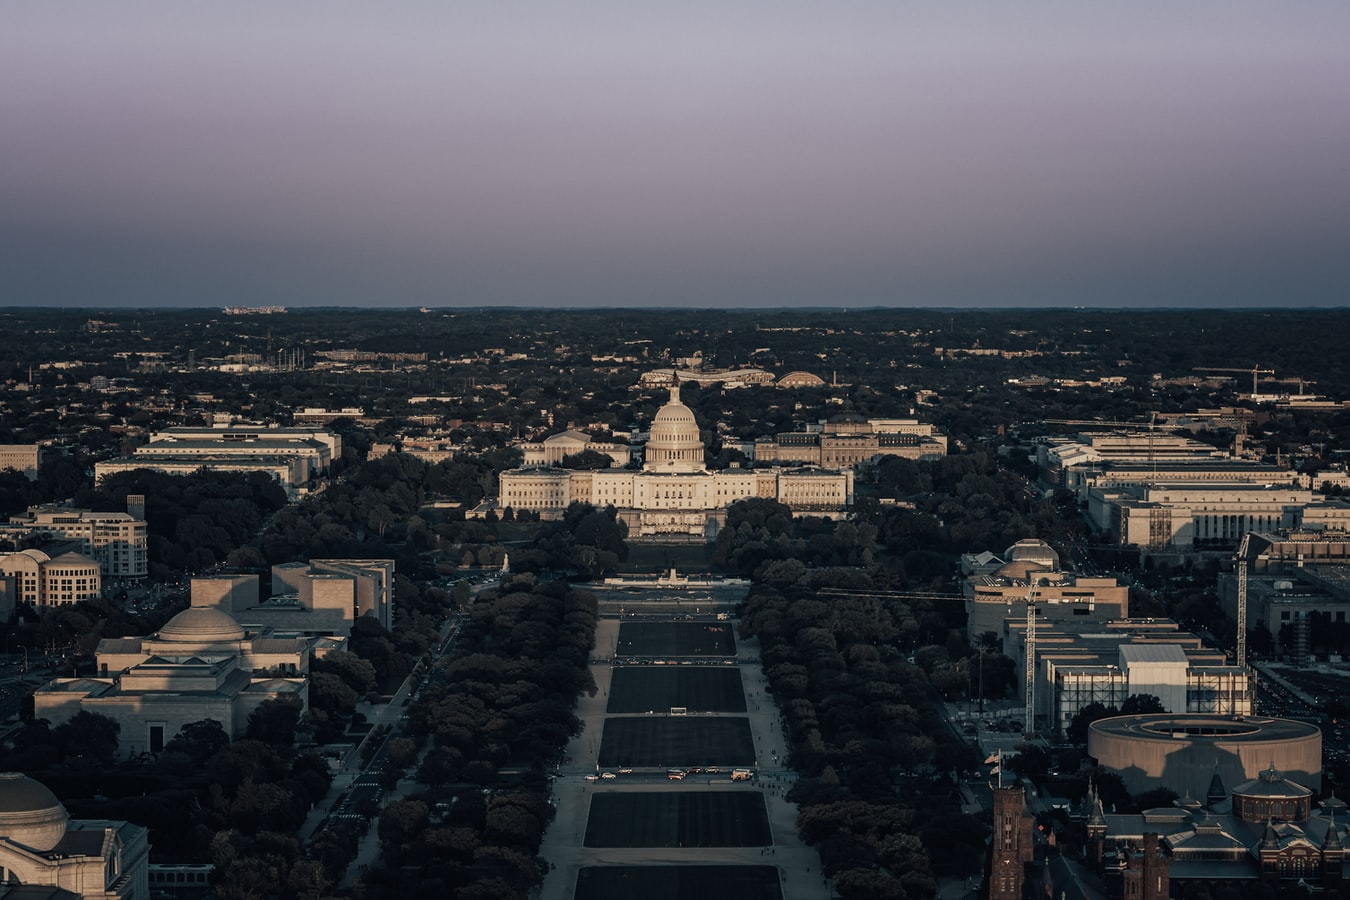 Aerial view of Capitol Building and surrounding area at dusk